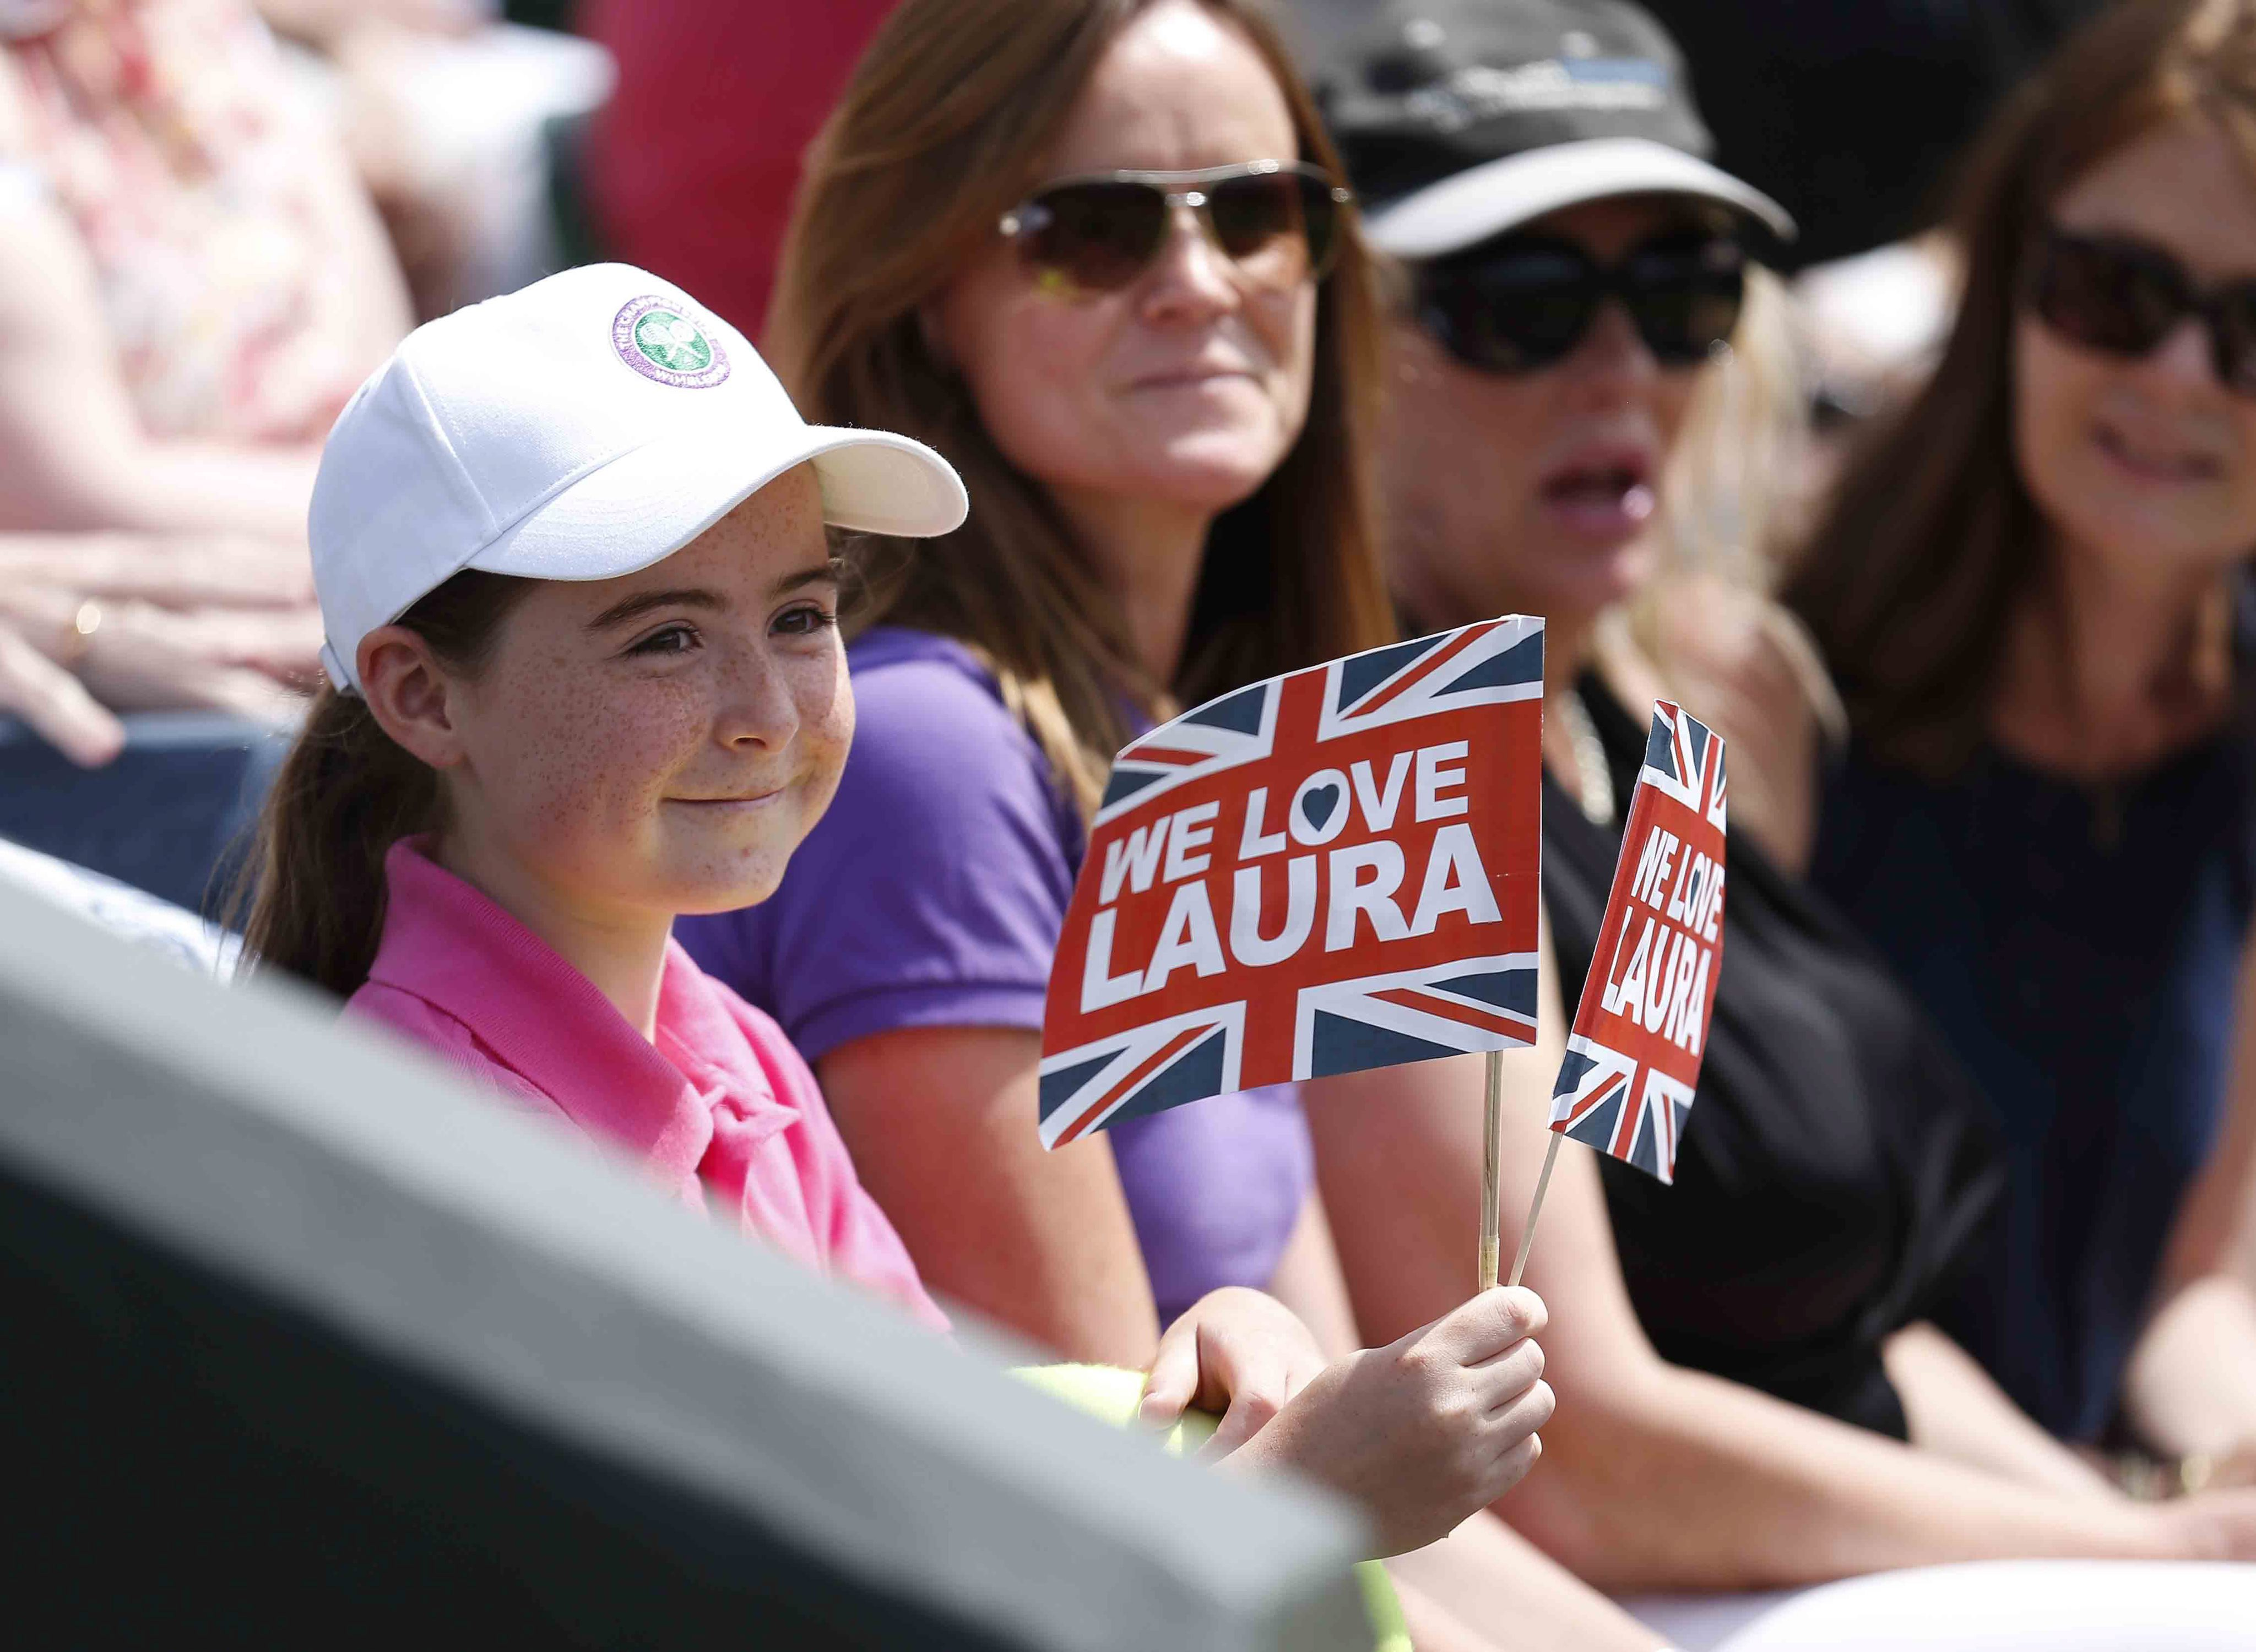 Wimbledon tennis fans camp out to see Andy Murray and Laura Robson